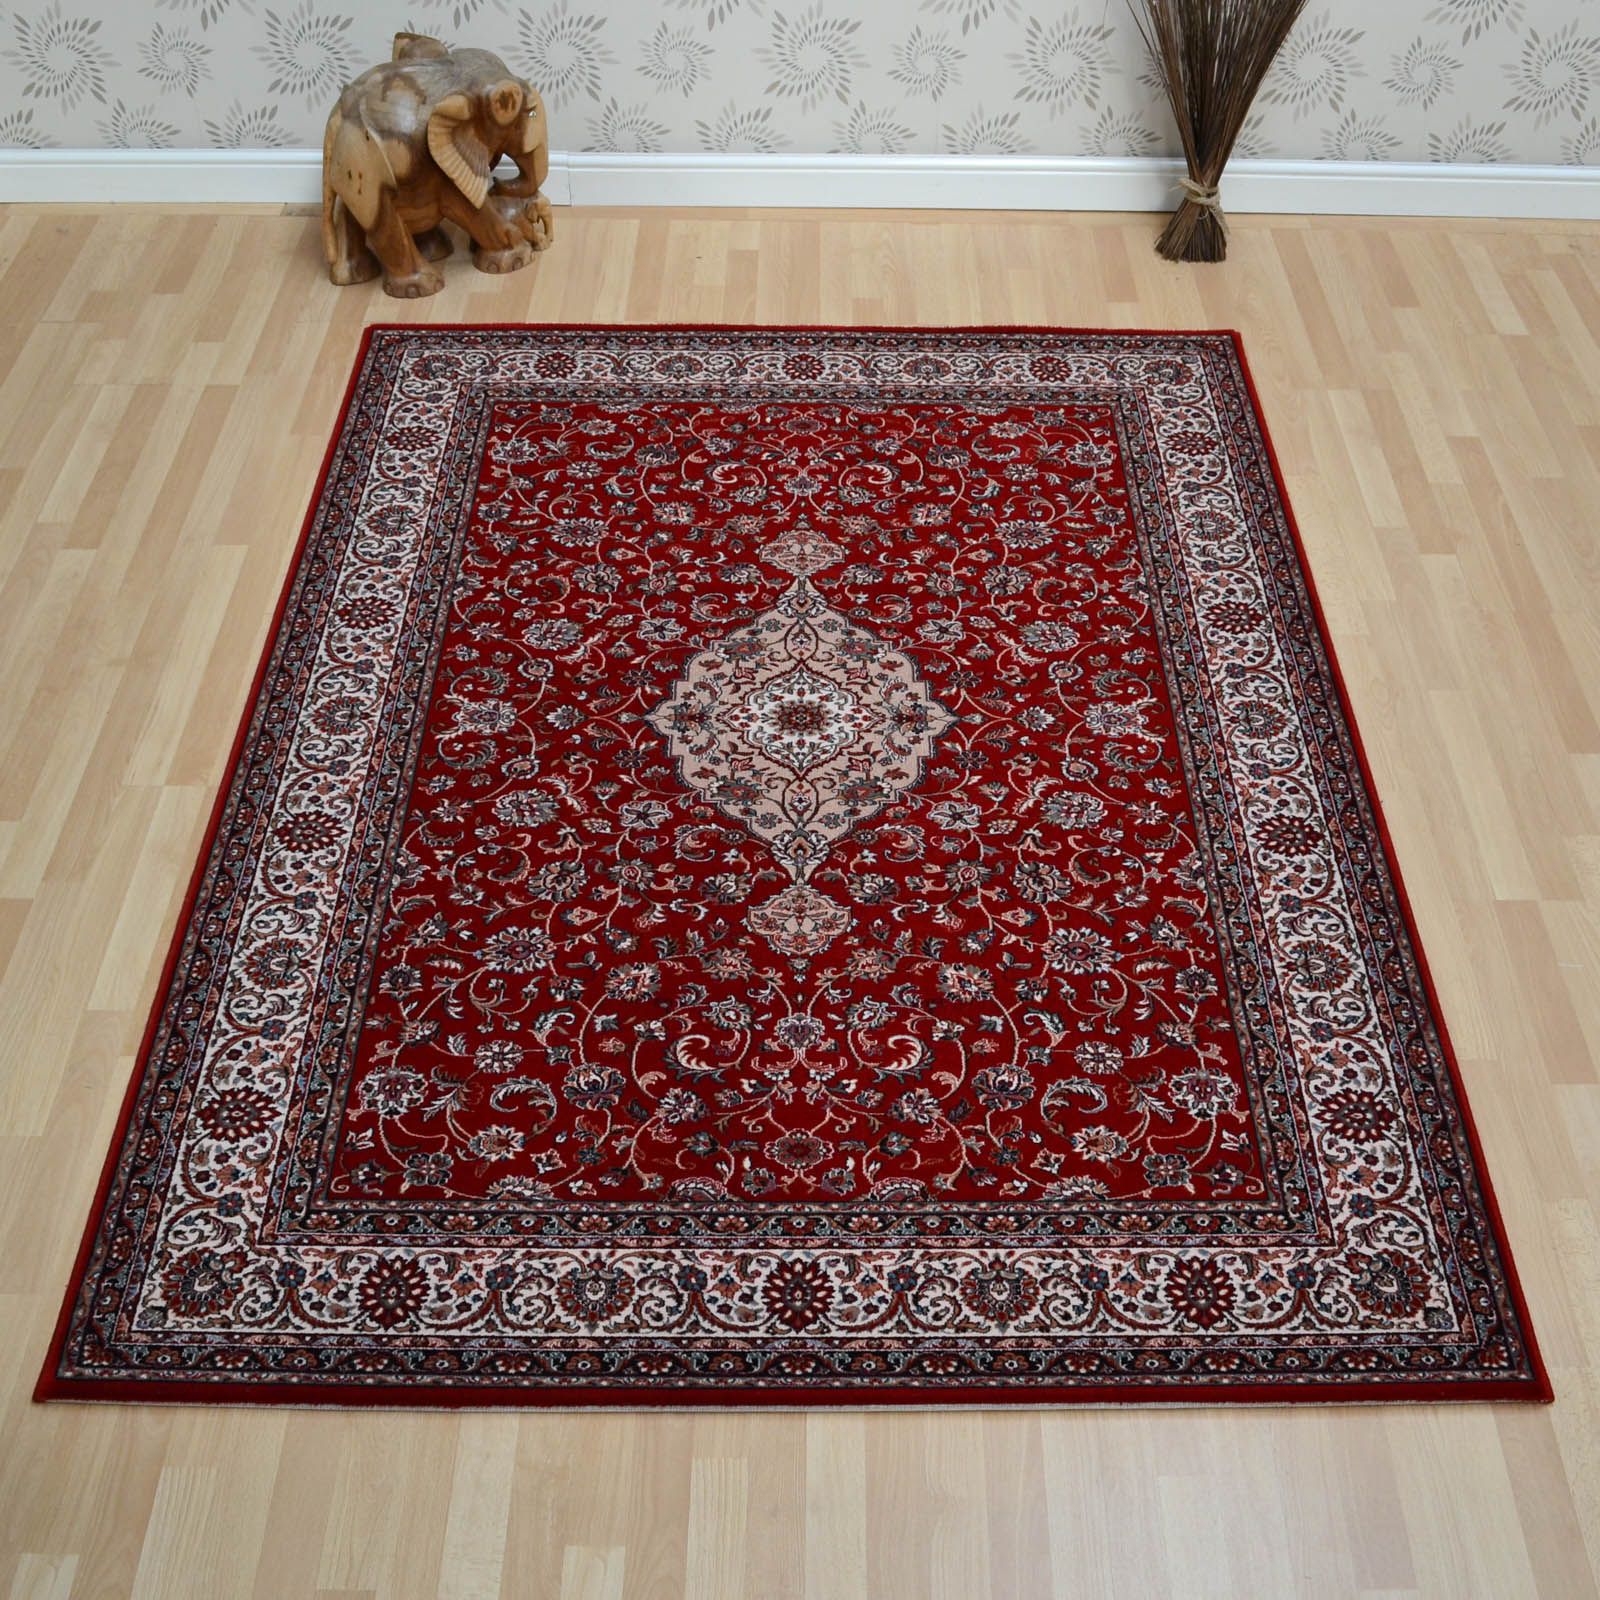 Farsistan Rugs 5649 677 Red